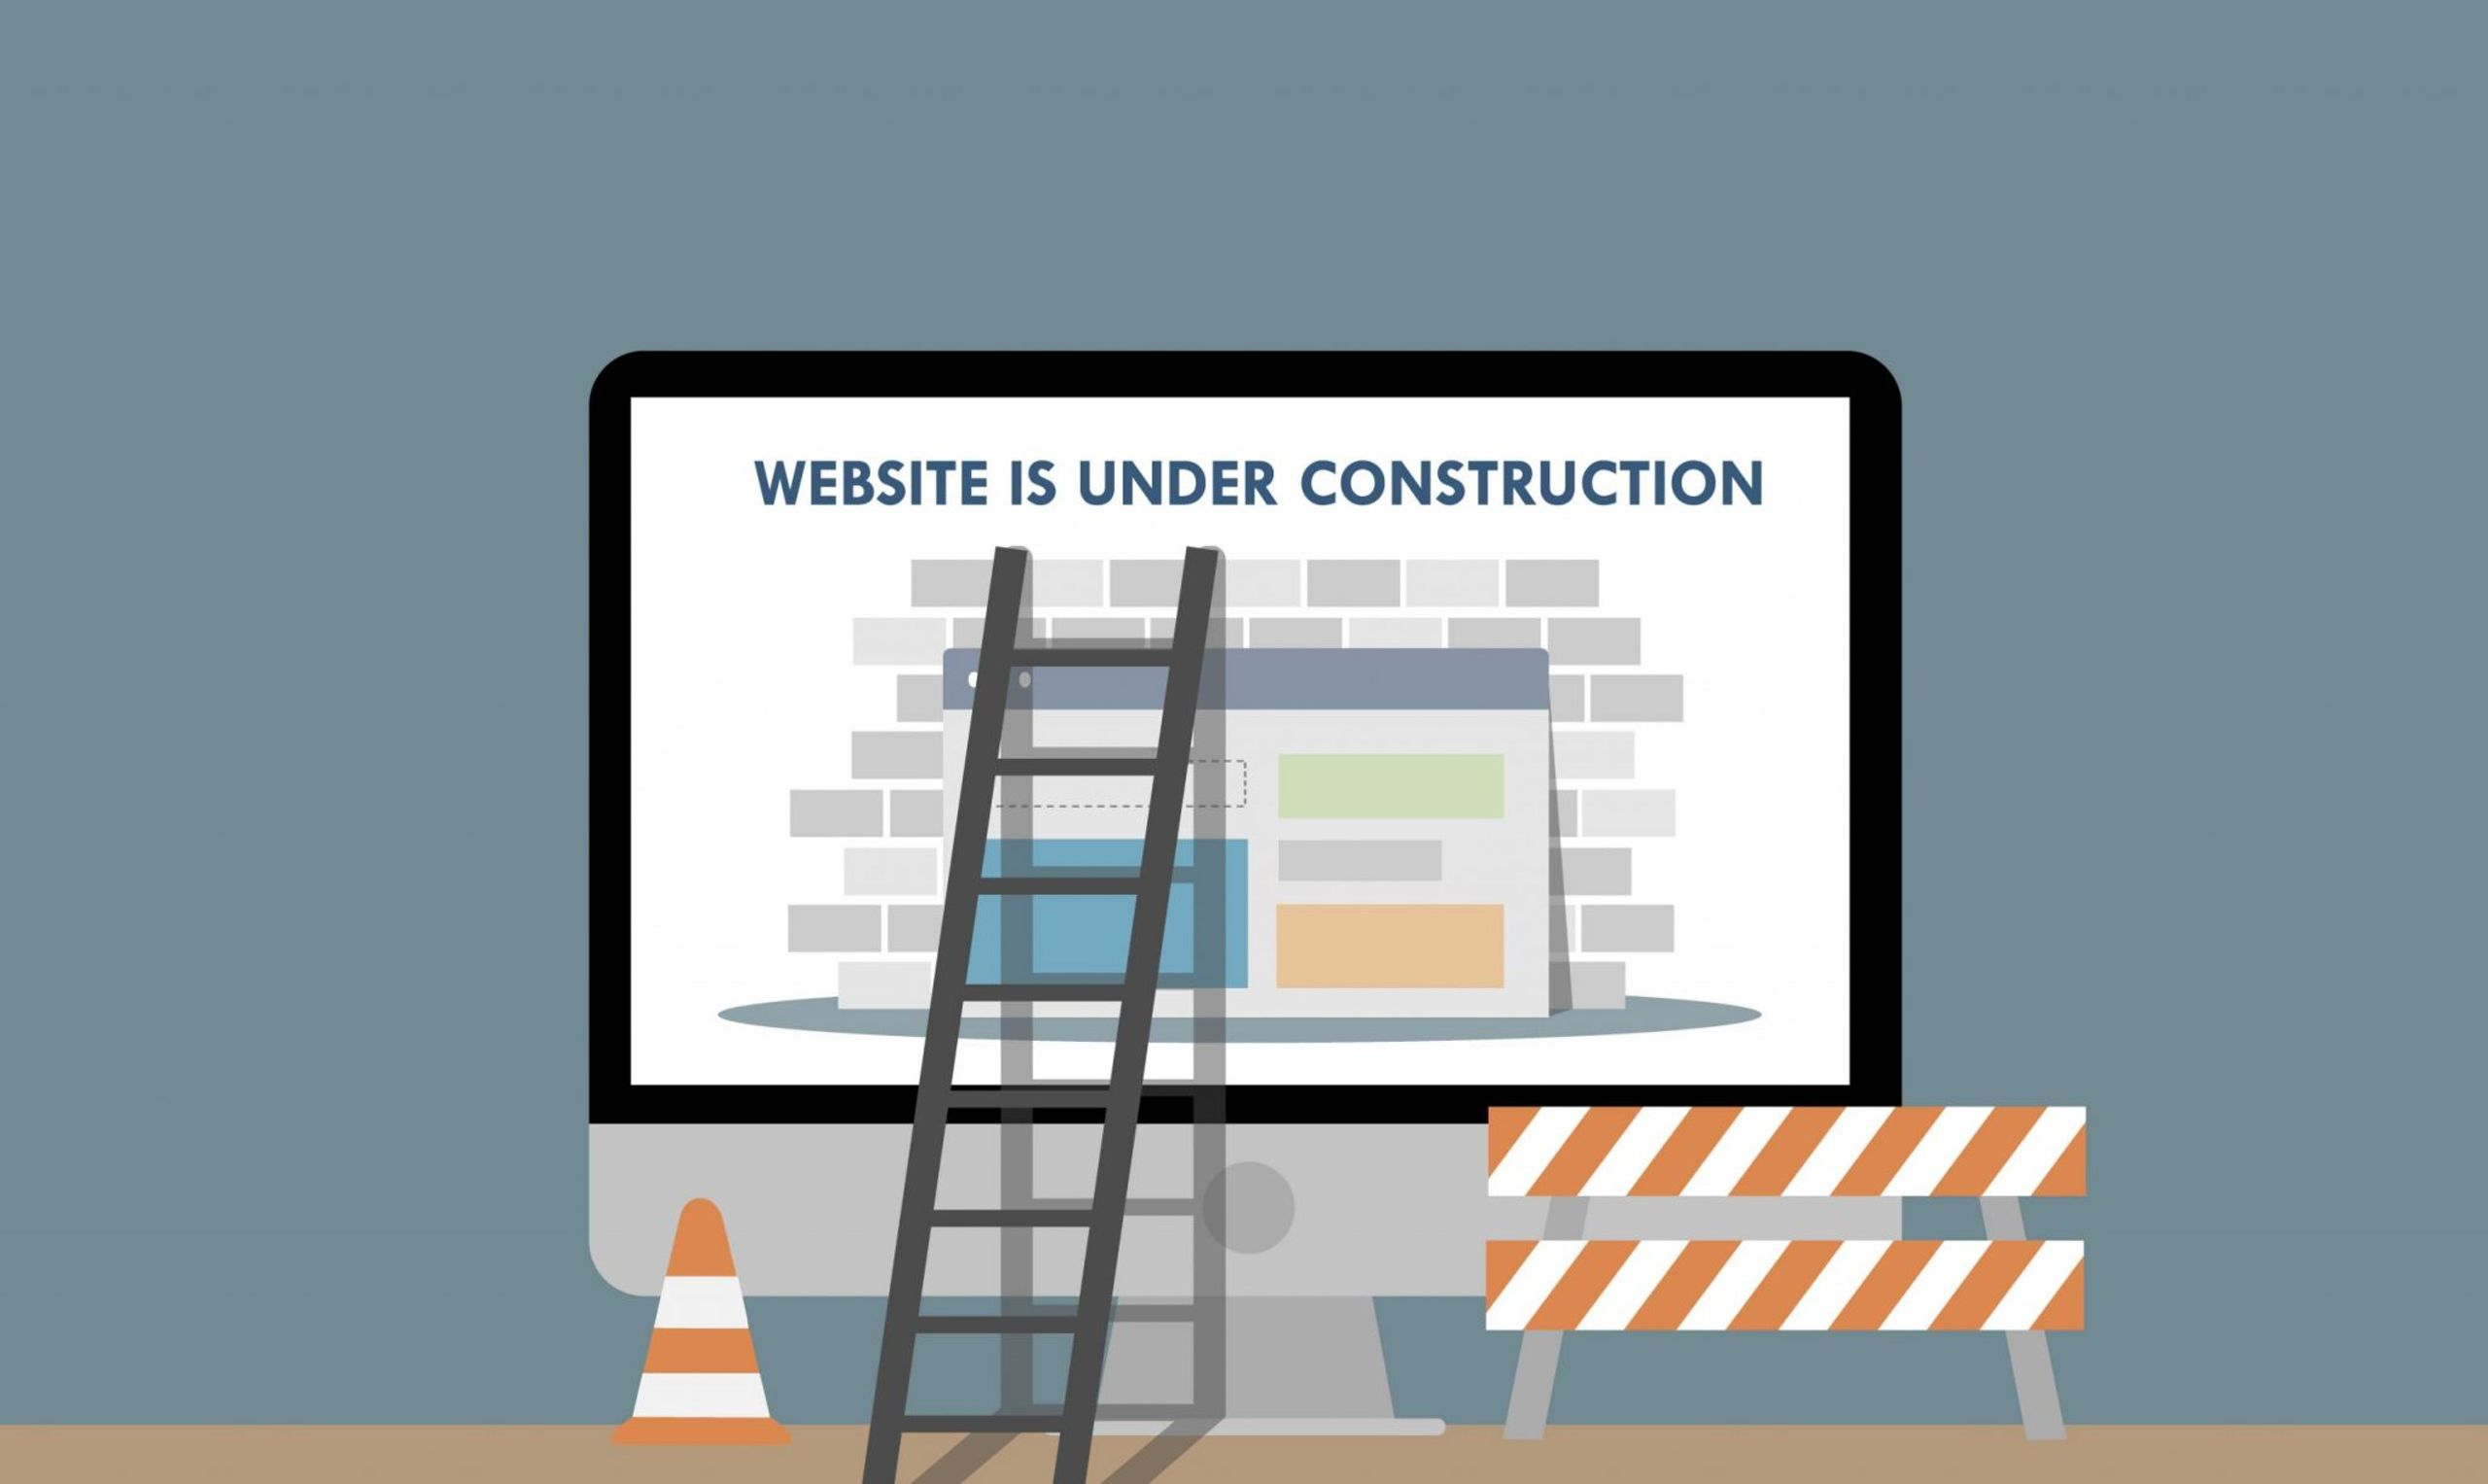 Website needs makeover so it is under construction